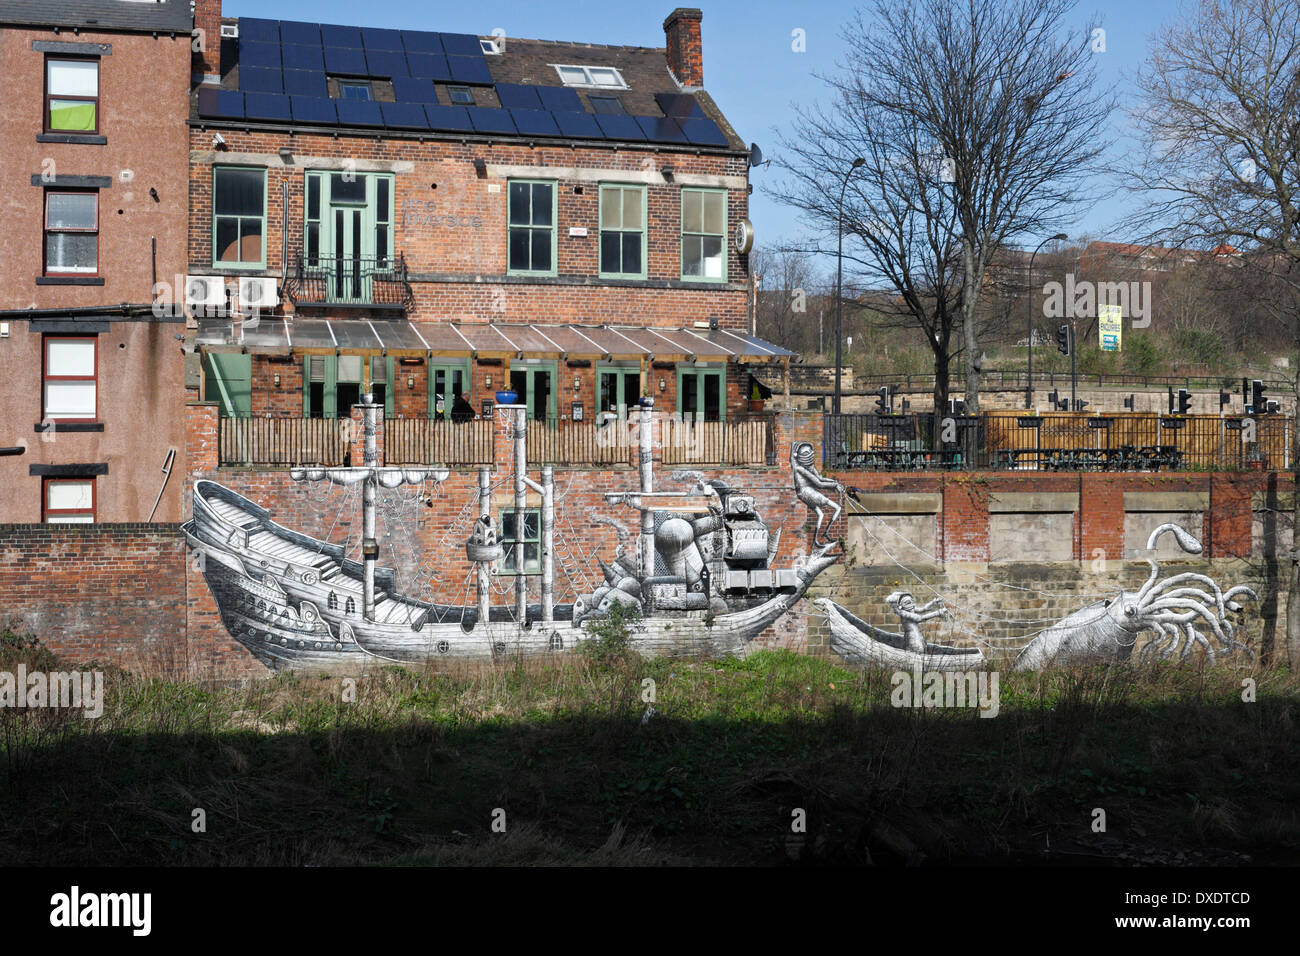 Artwork by Phlegm on the wall of the Riverside Pub and River Don Sheffield - Stock Image